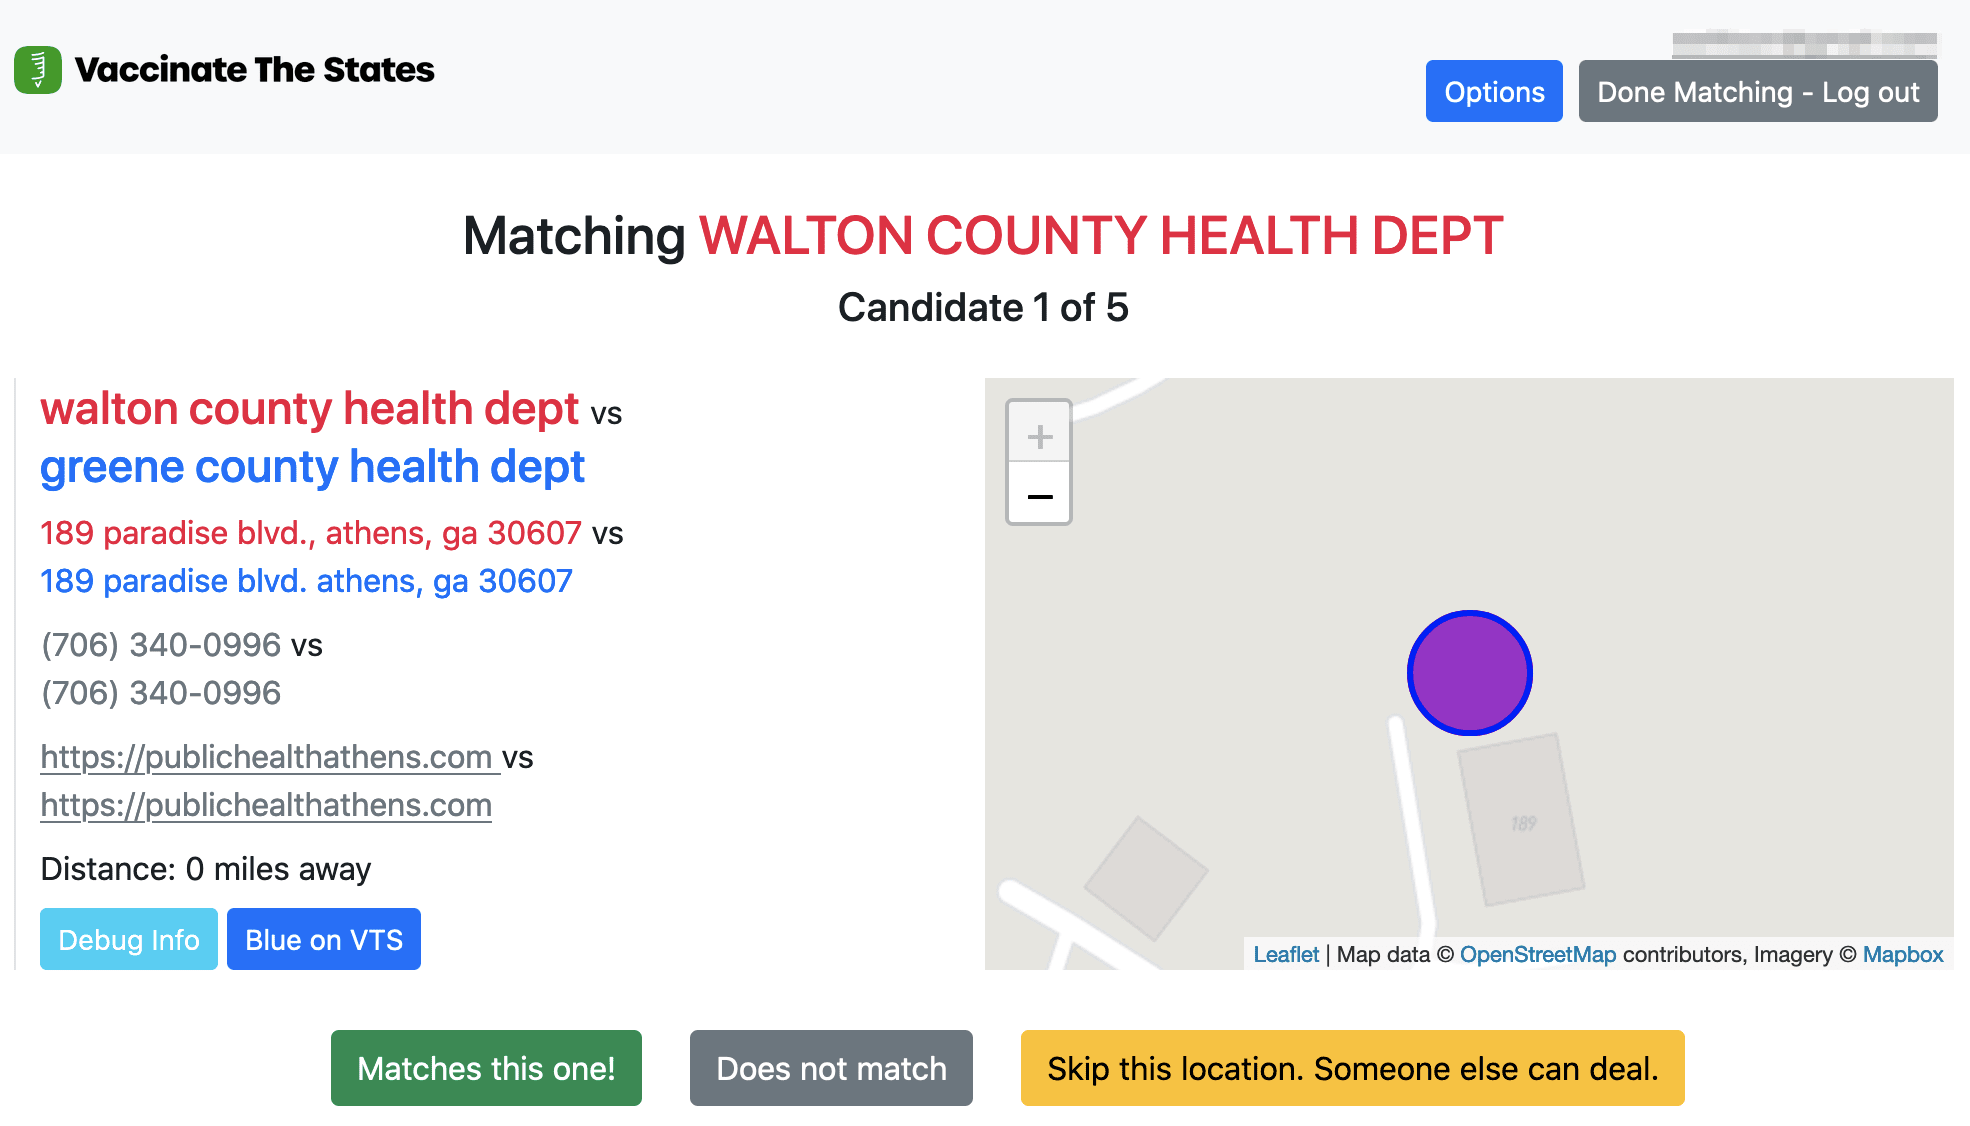 An interface showing a location and a potential match